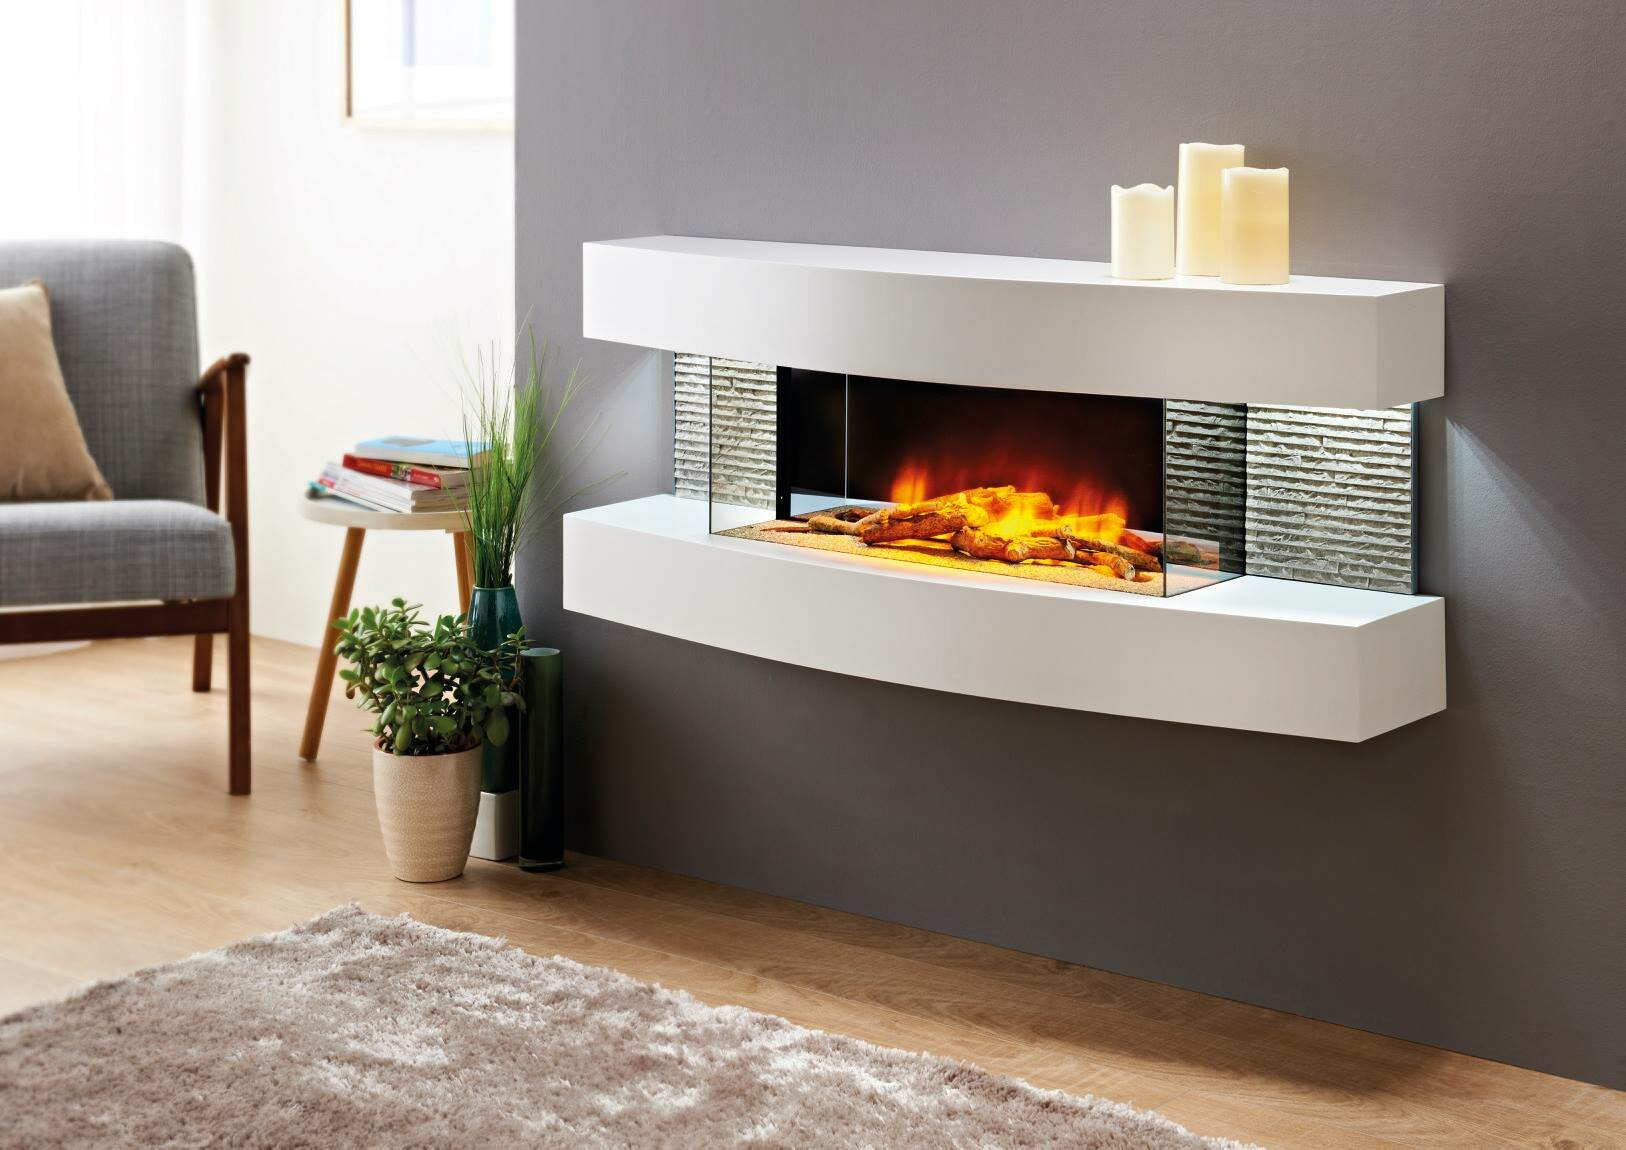 Orren Ellis Fraenzel Curve Wall Mounted Electric Fireplace Reviews